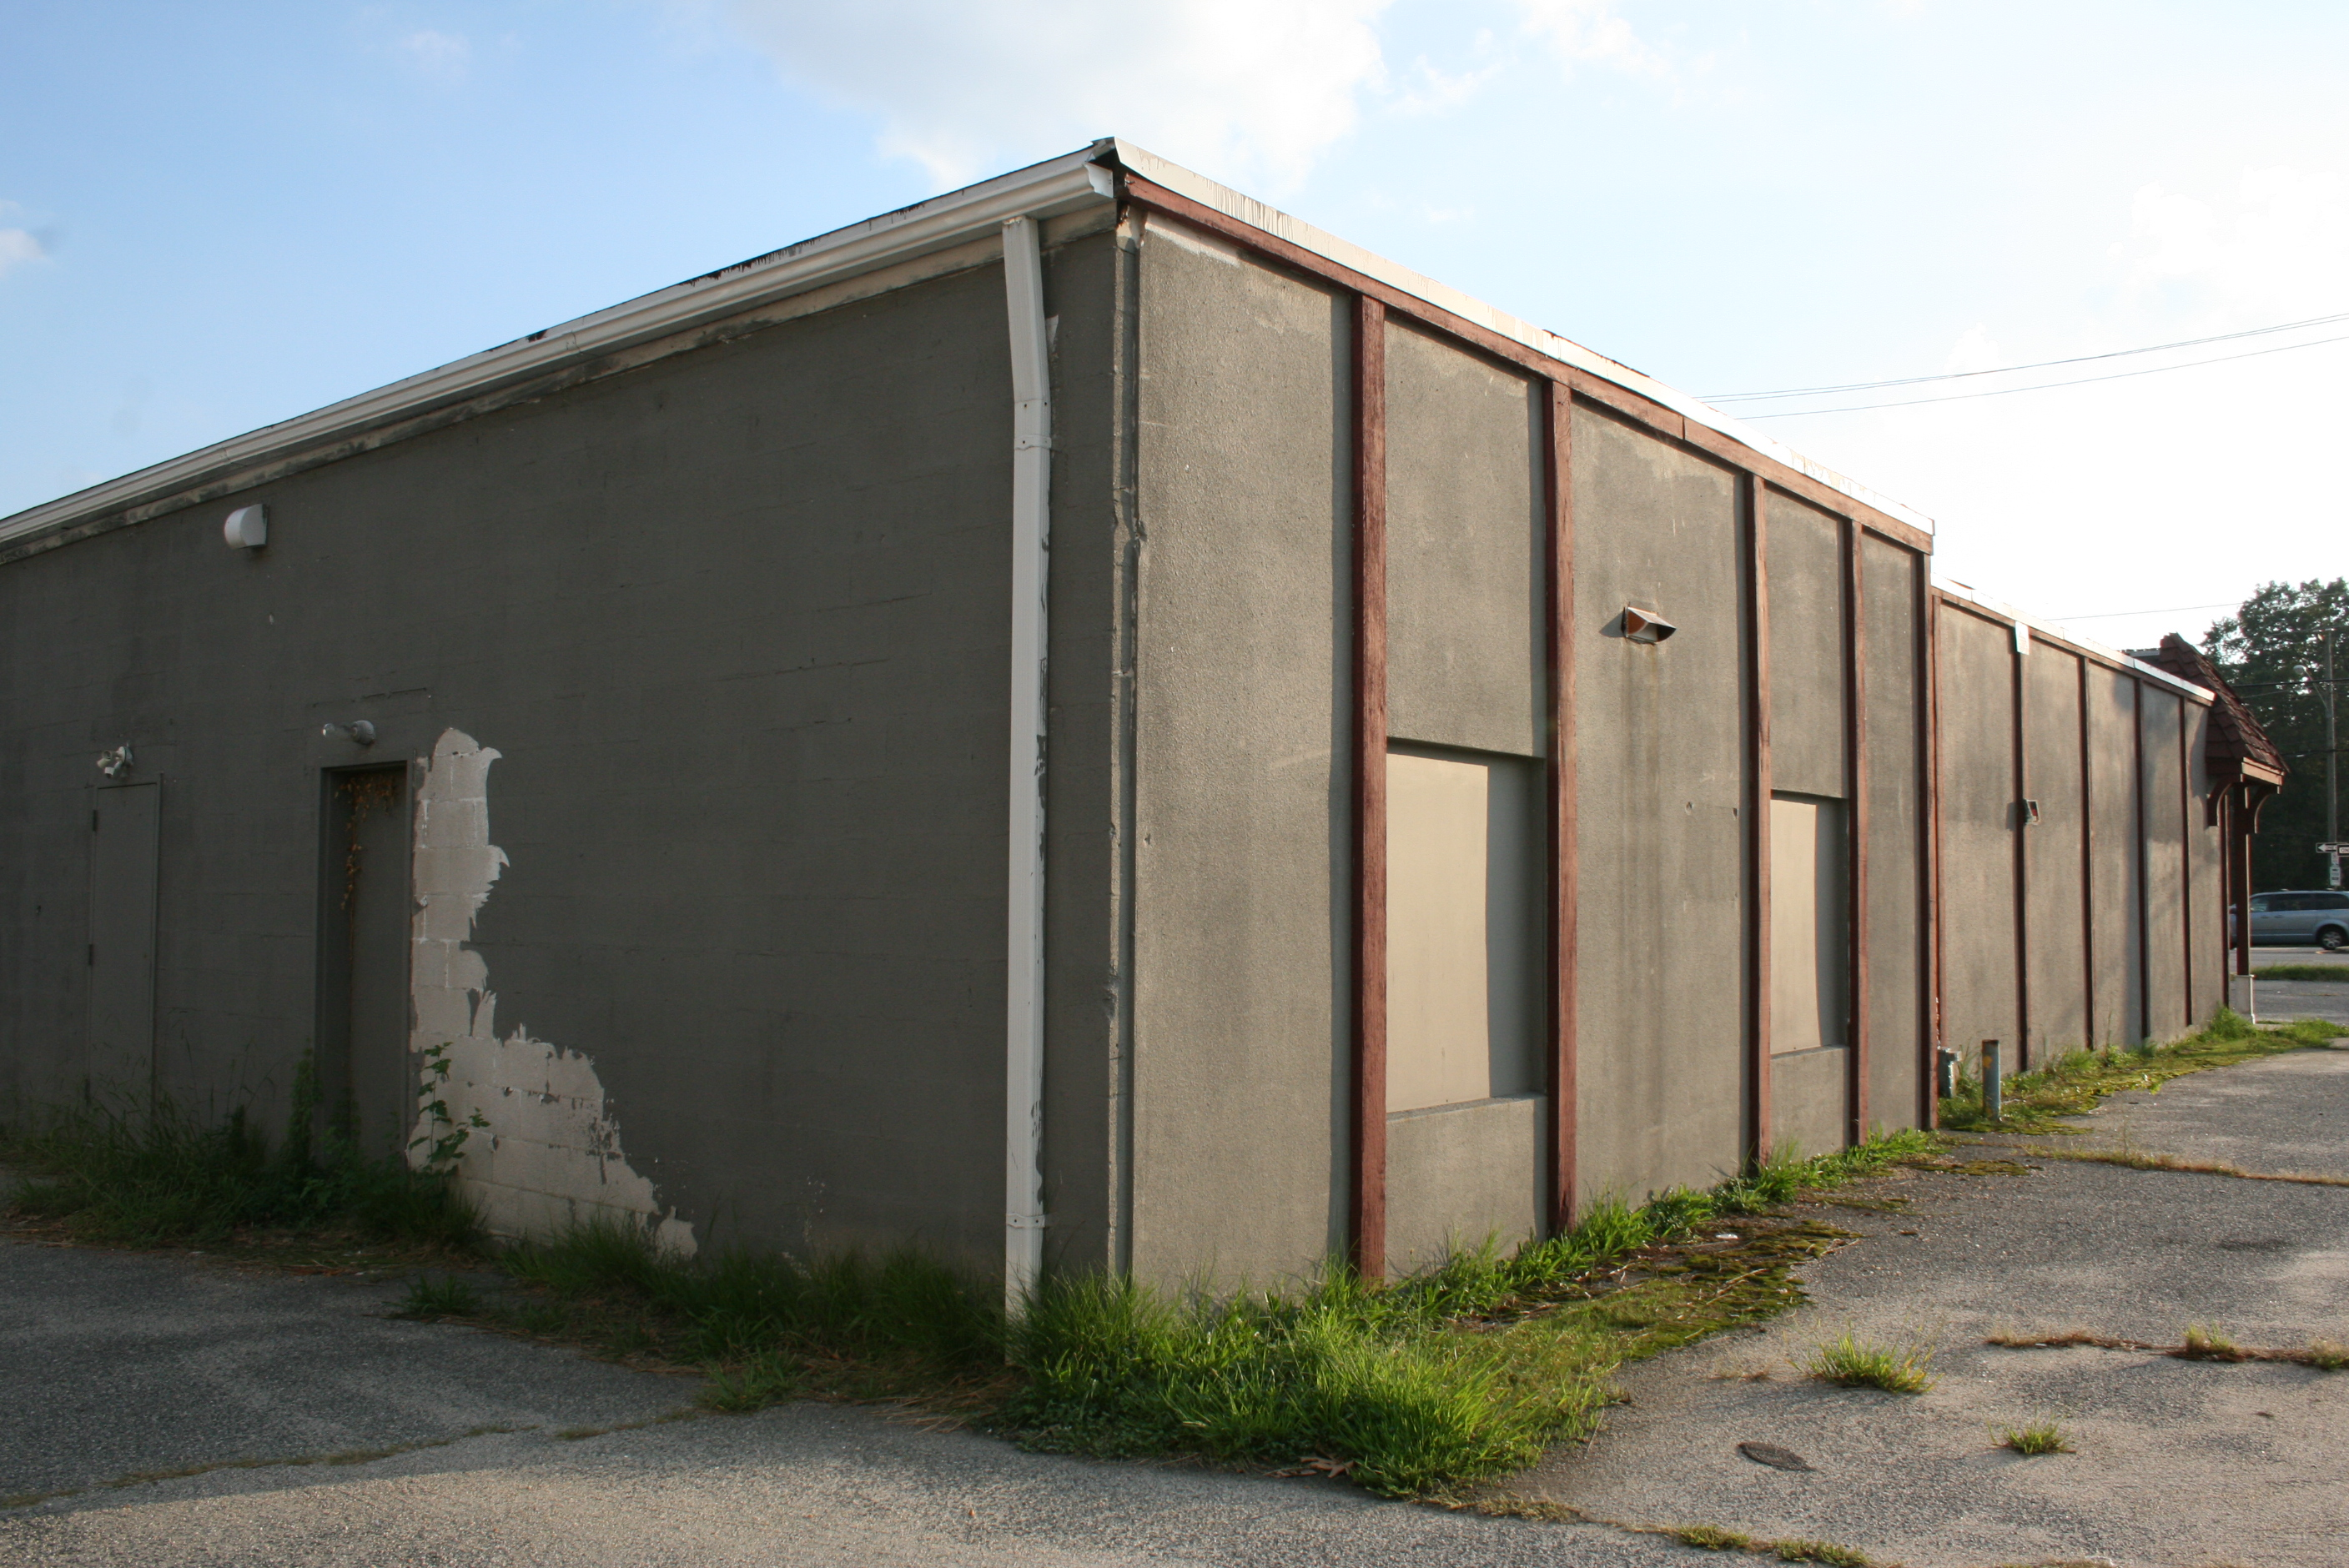 Boarded up windows, overgrown weeds.